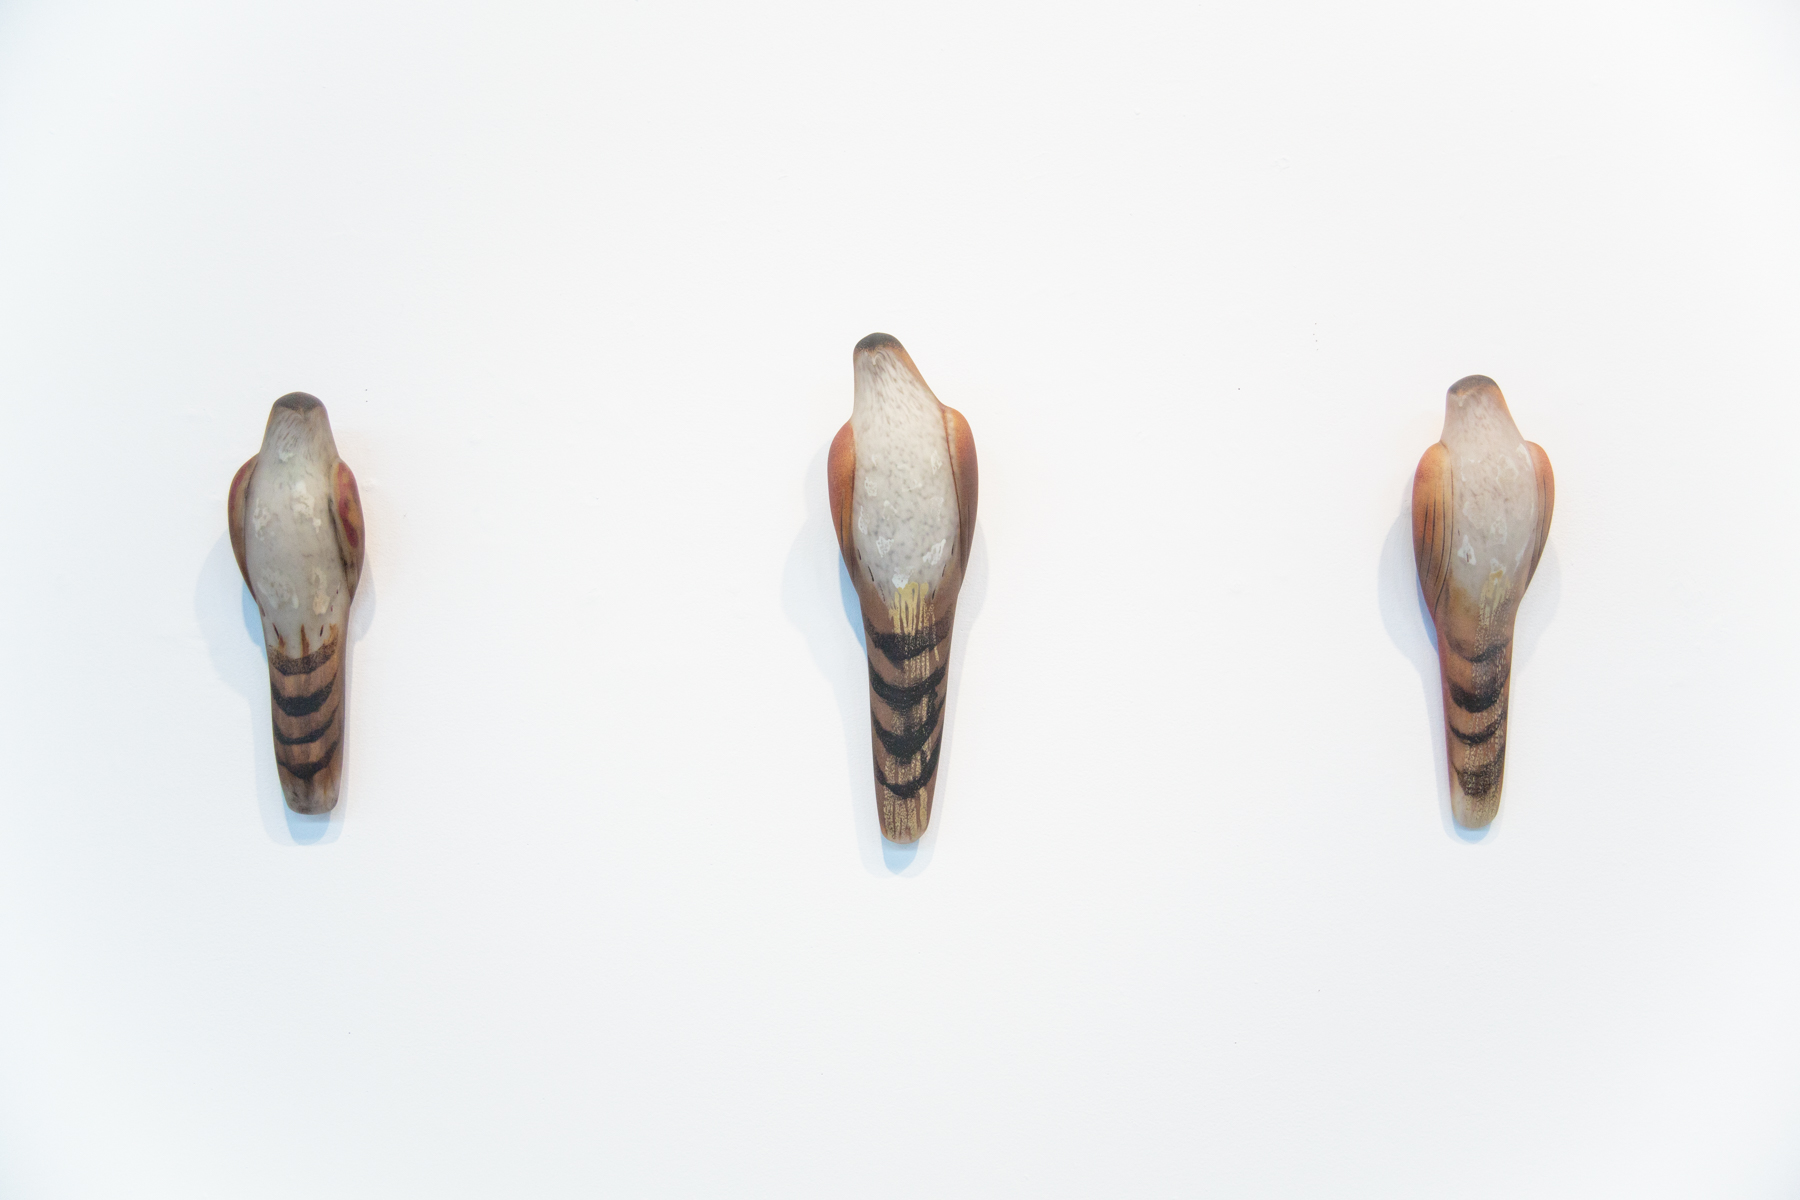 """Tobacco Lace Birds (Small, Large, Square)"", 2018 Hand blown pigmented glass Small: 14.5 x 4.5 x 4, Large: 16.5 x 5 x 4, Square: 13 x 4 x 3.5 inches"